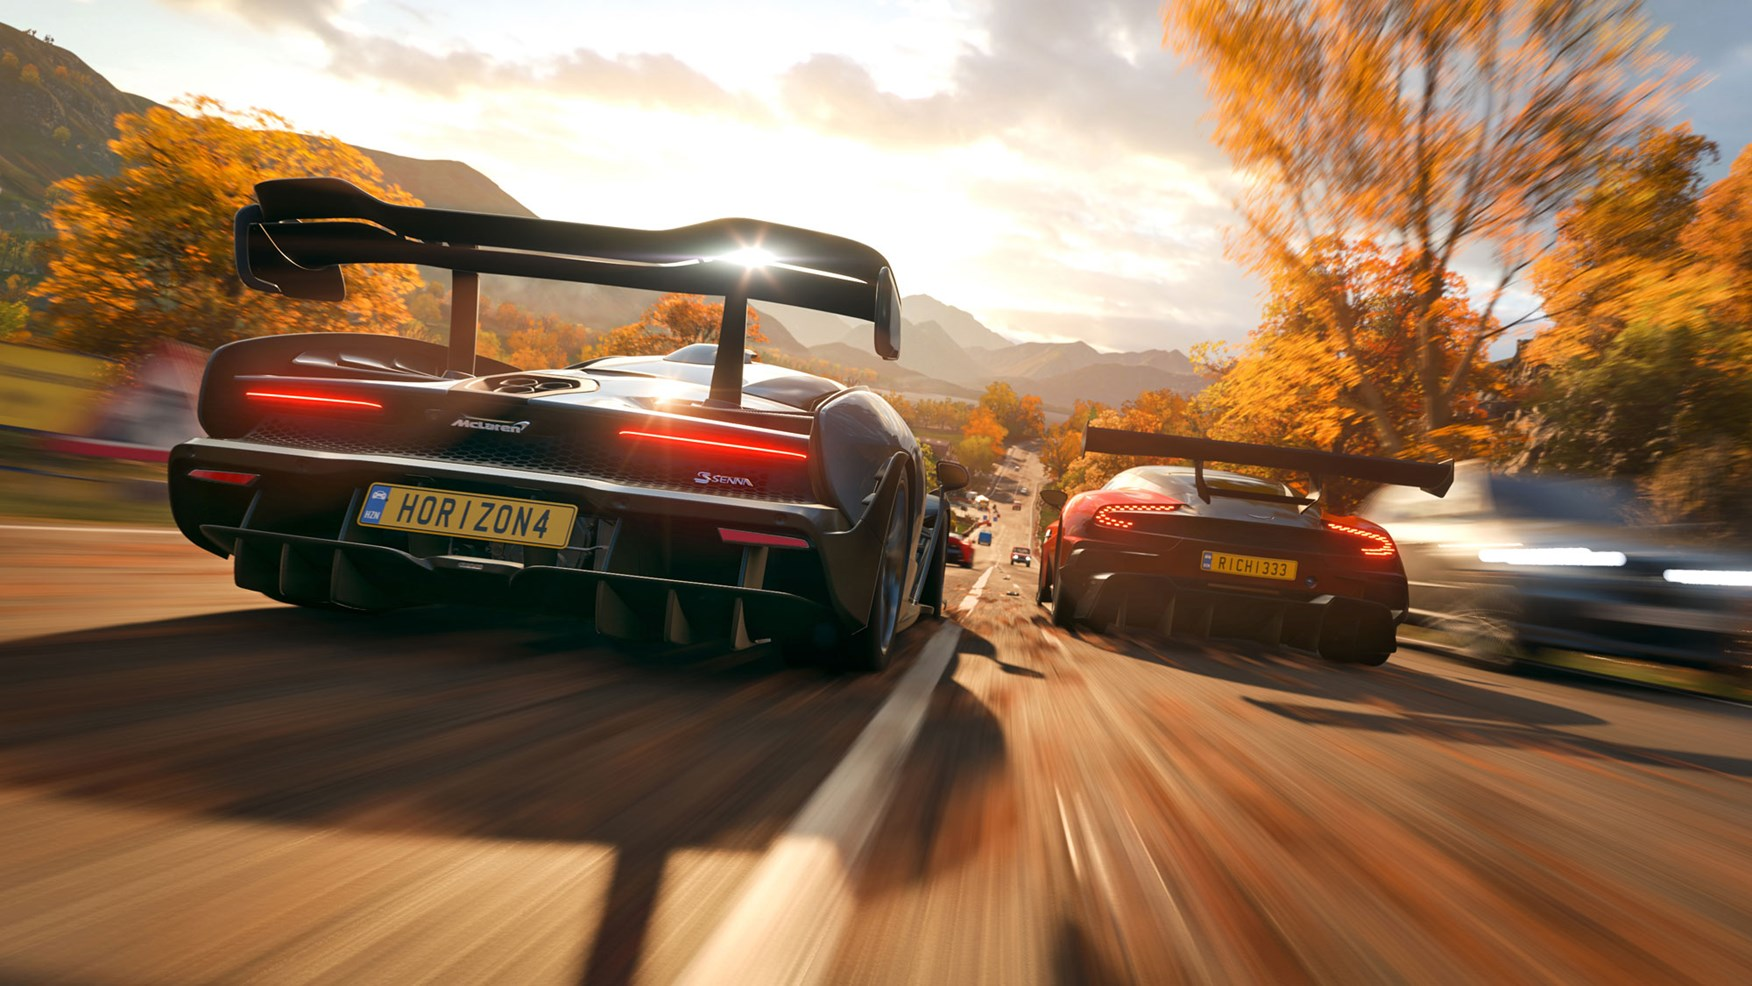 Forza horizon 4 → Forza Horizon 4 pc game